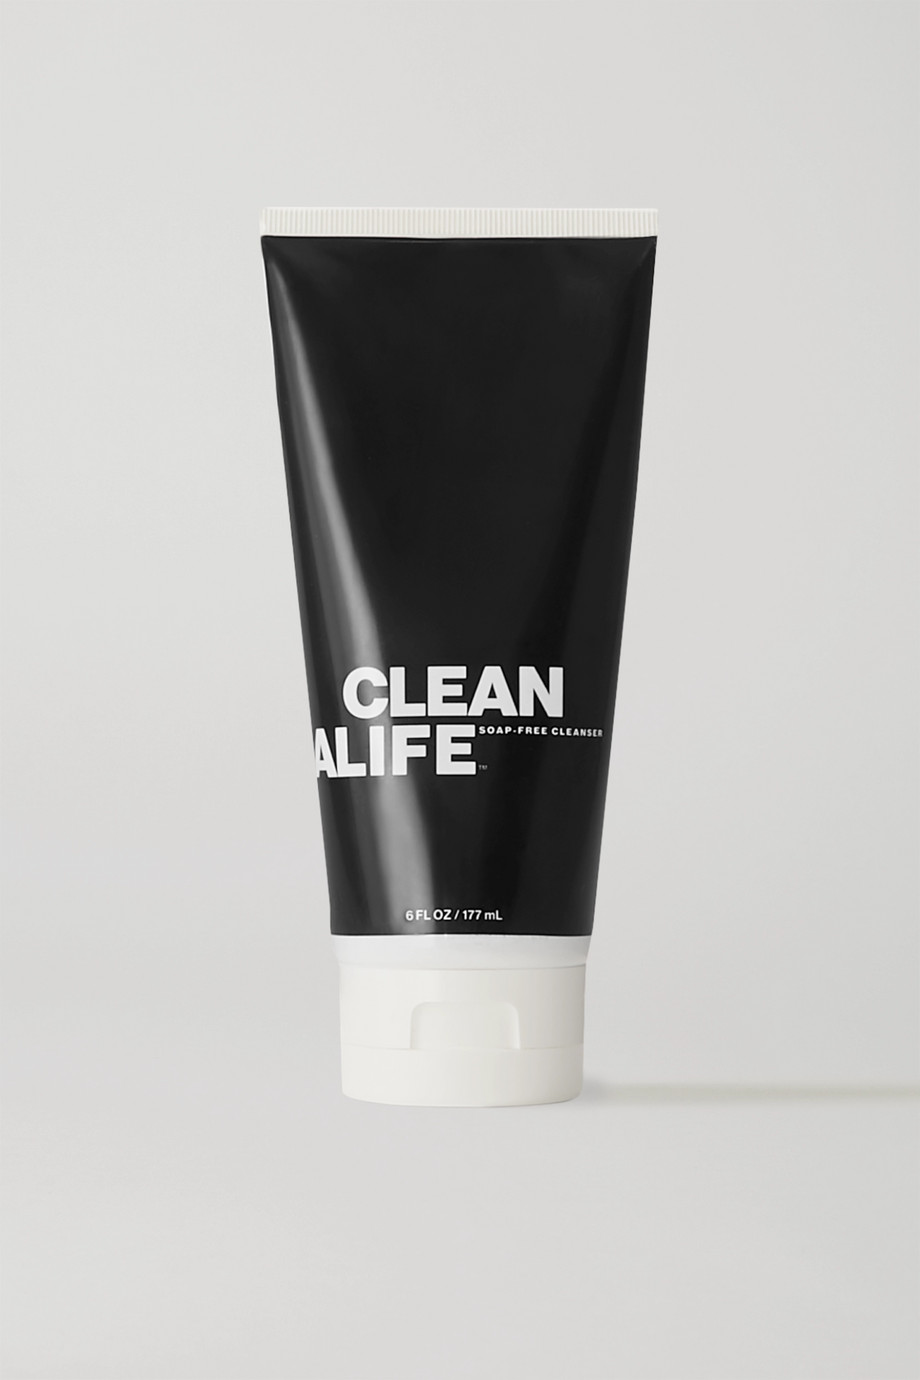 NORMAKAMALIFE Clean Cleanser, 177ml